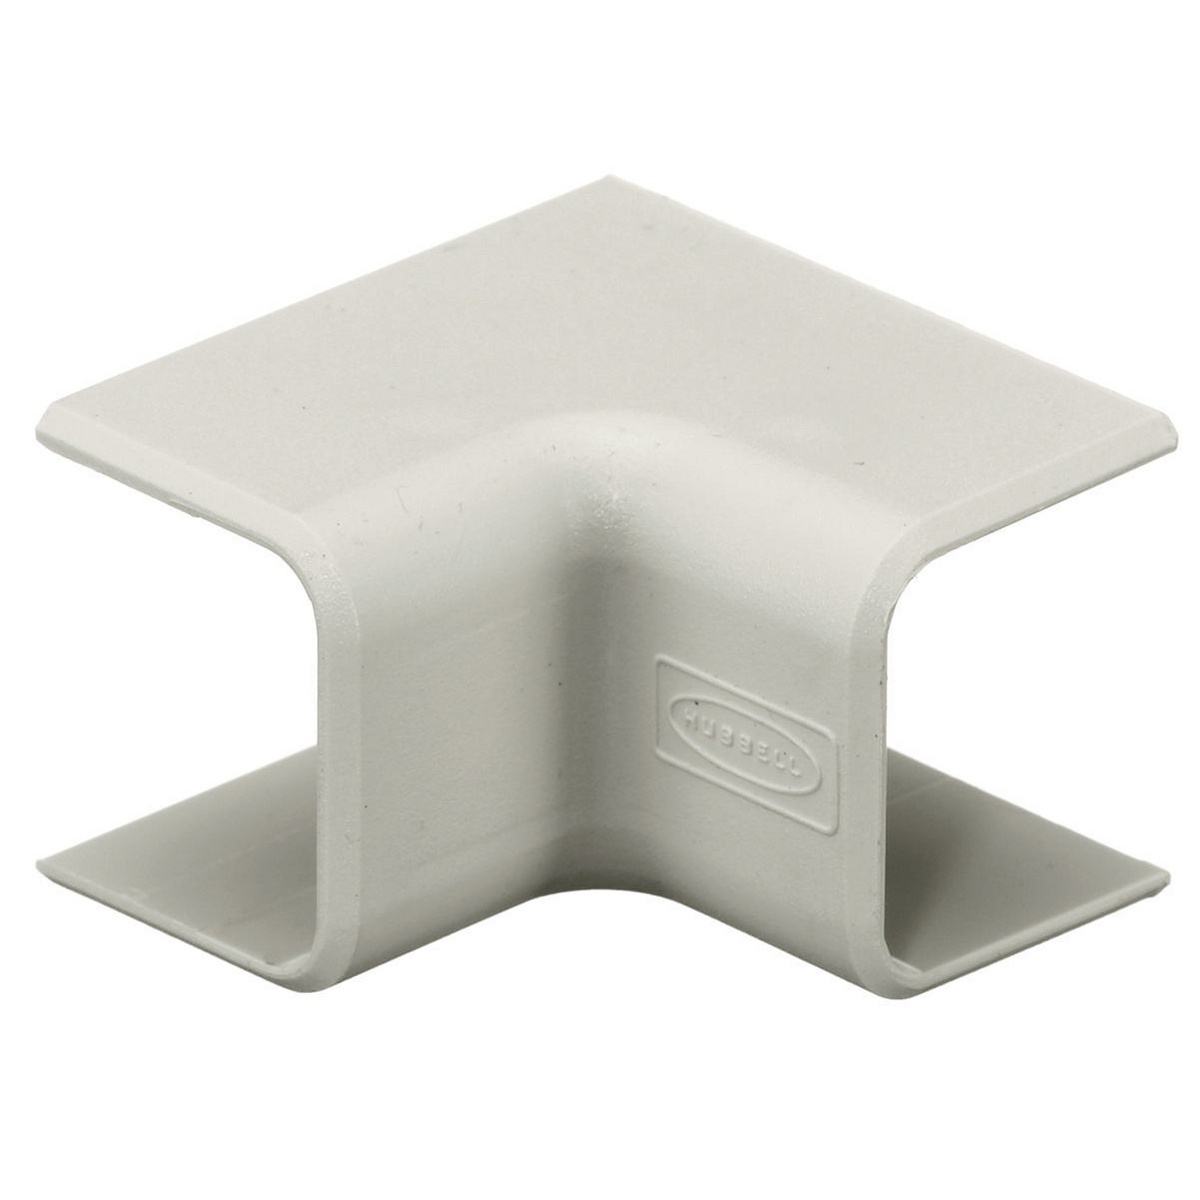 Hubbell PT1IE 1.34 x 0.89 x 1.34 Inch Office White Raceway Internal Elbow Cover